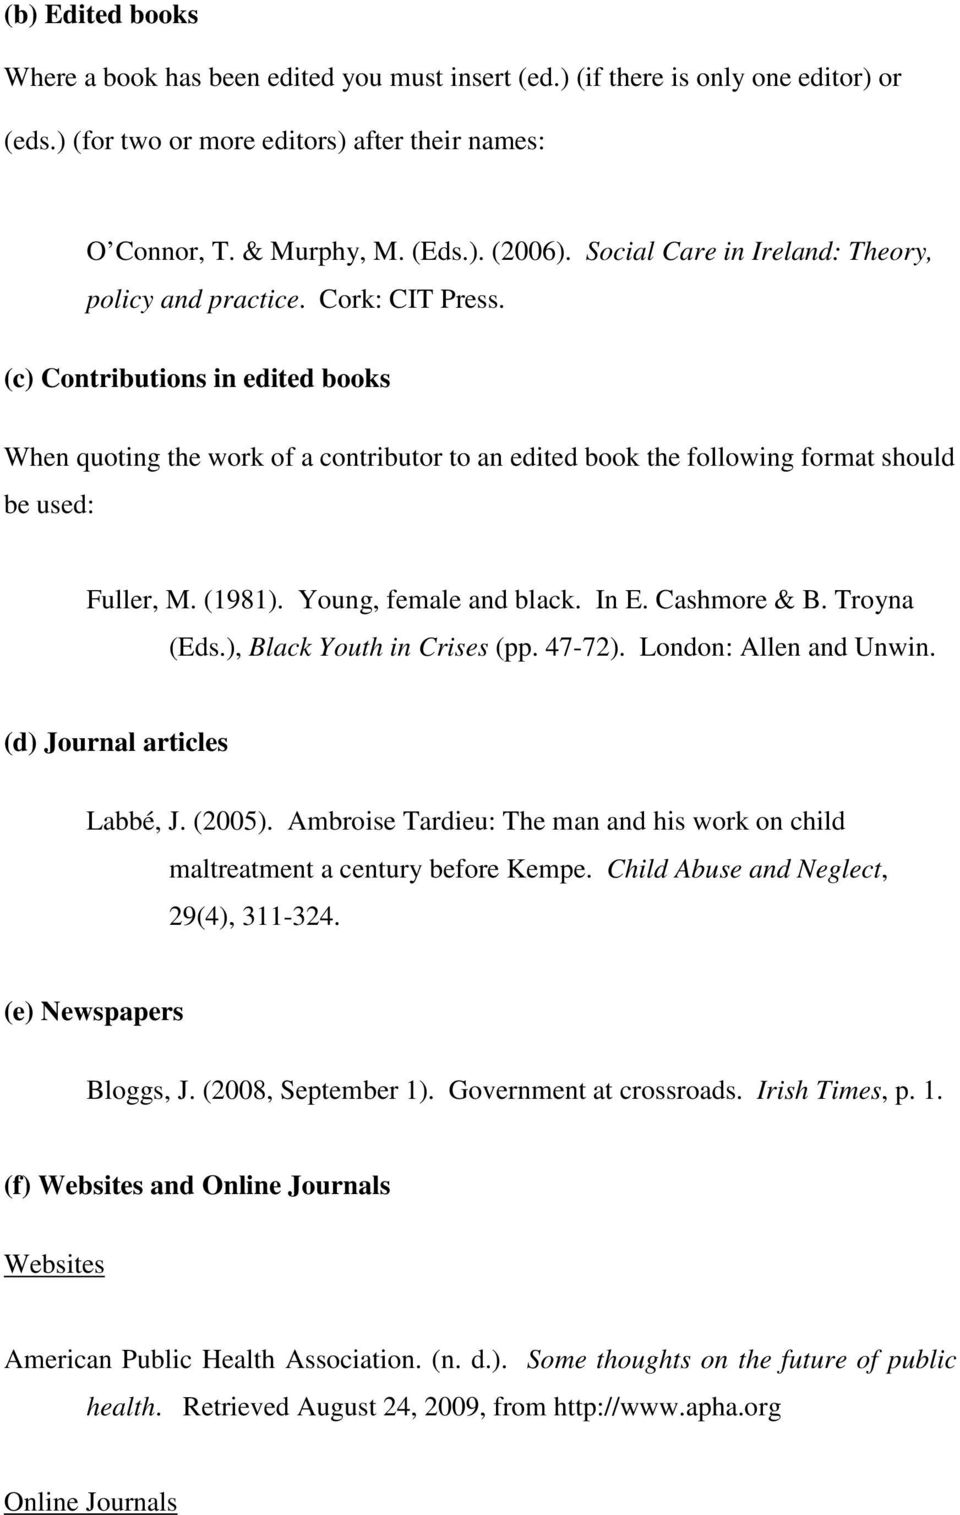 (c) Contributions in edited books When quoting the work of a contributor to an edited book the following format should be used: Fuller, M. (1981). Young, female and black. In E. Cashmore & B.